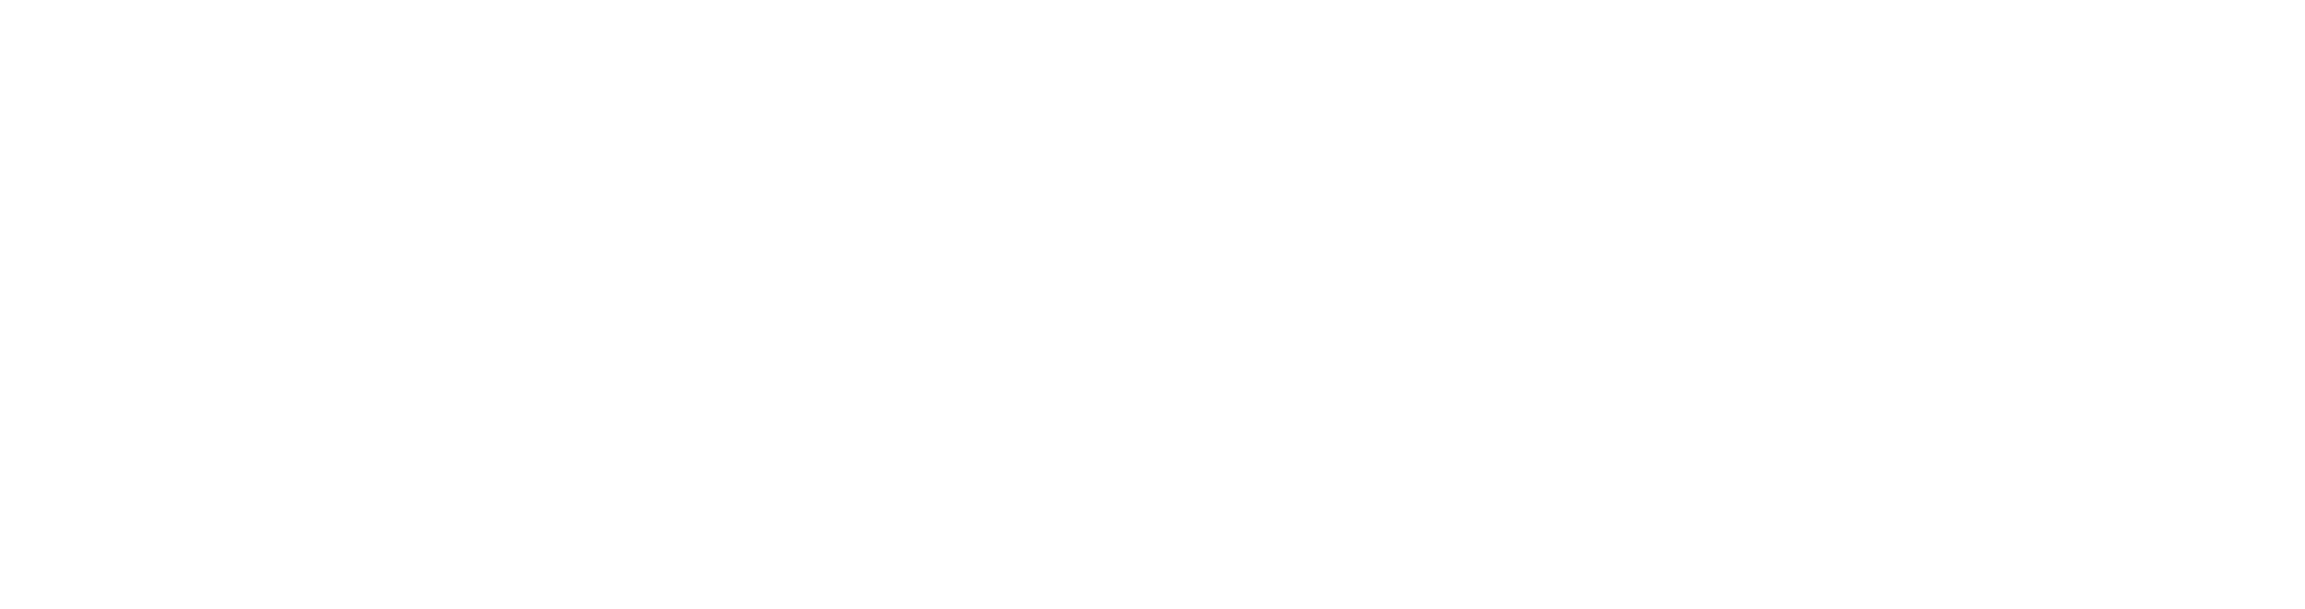 Neurology, Neurosurgery, Spine Care | UTHealth Neurosciences logo in white